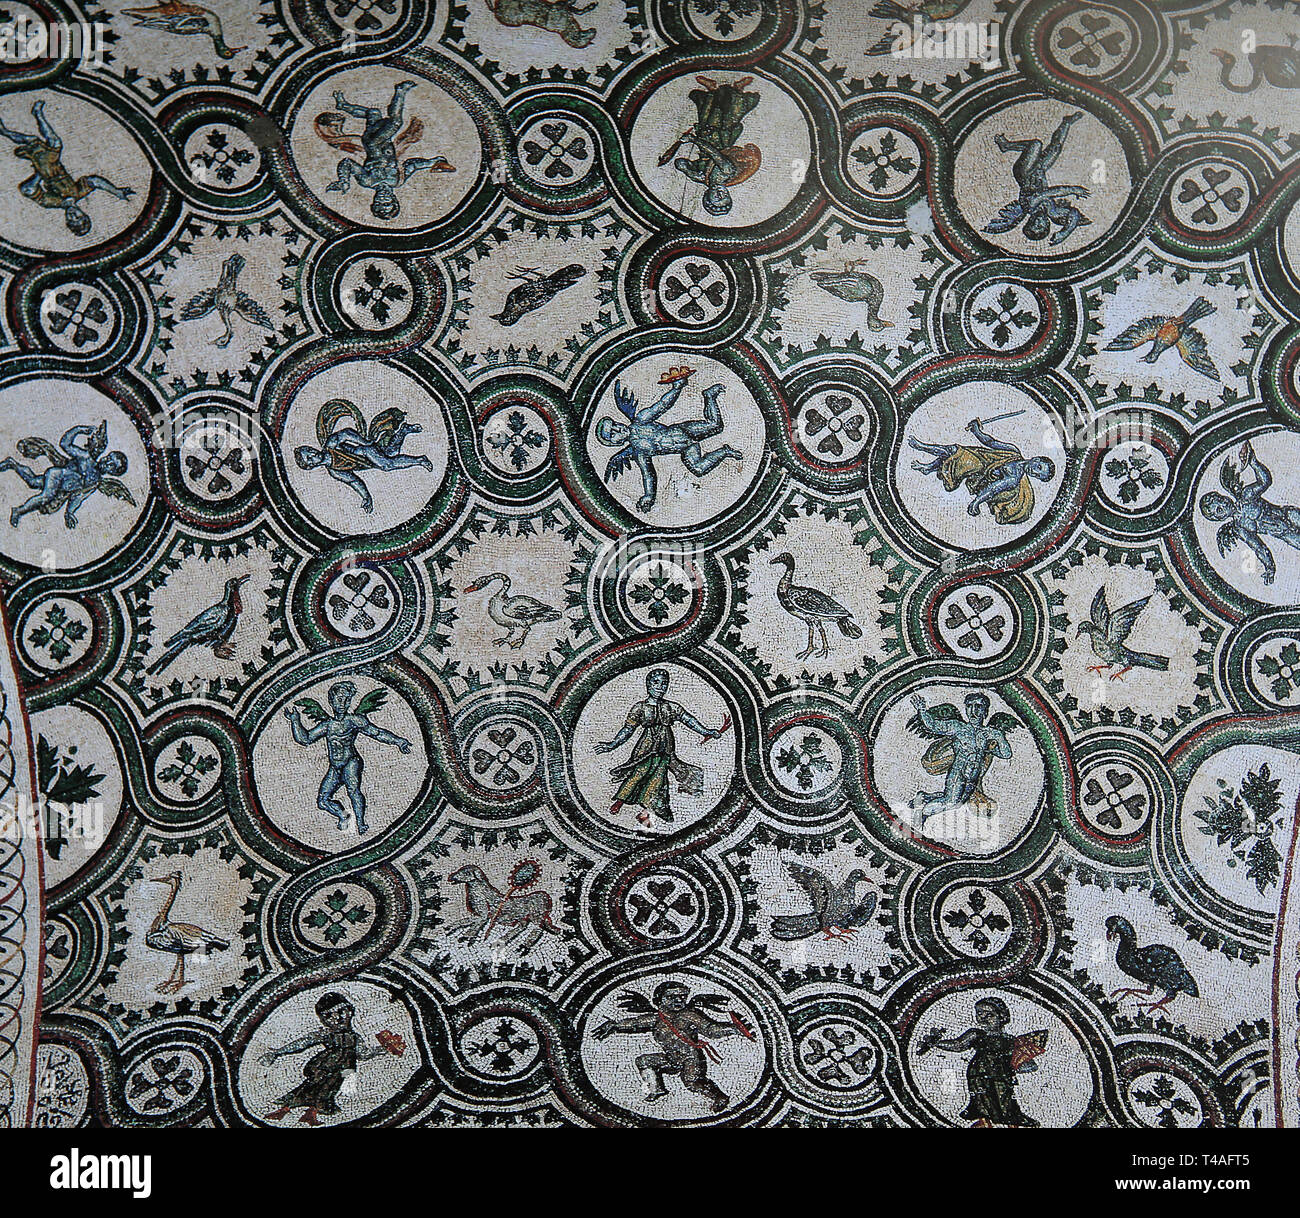 ROME, ITALY, MARCH 30, 2015 : mosaic in San Clemente church, march 30, 2015 in Rome, Italy Stock Photo